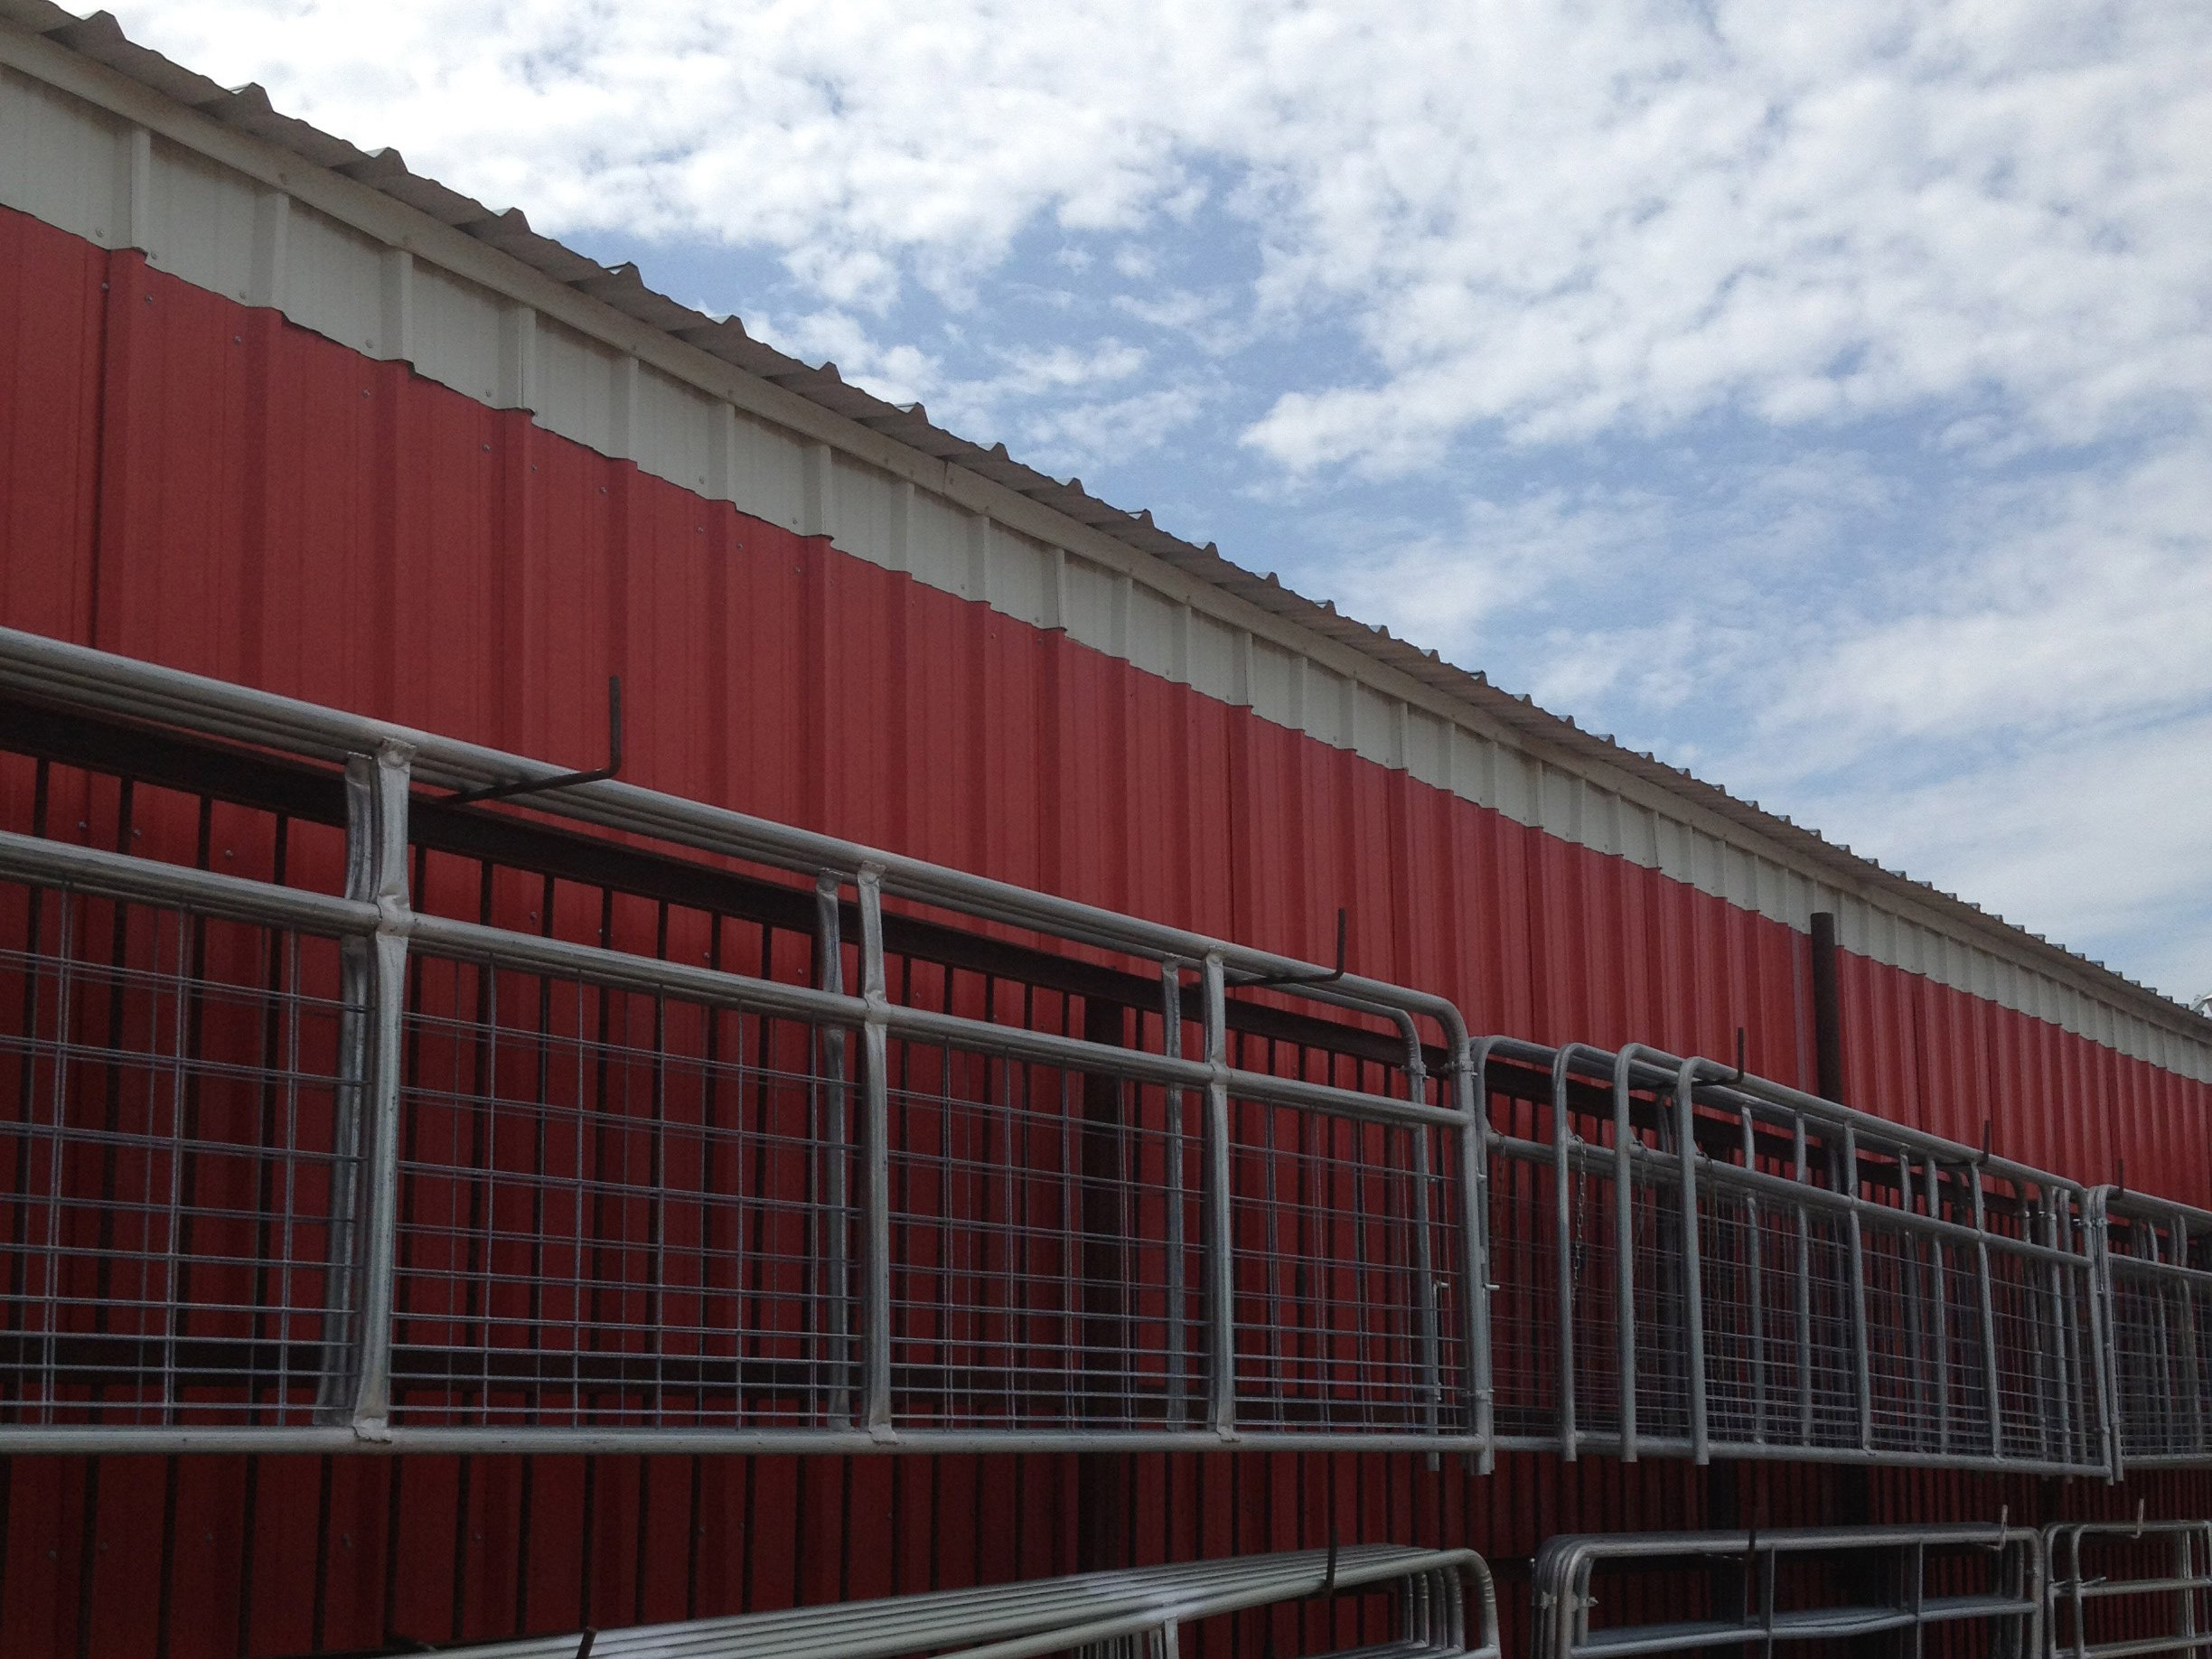 Gates and posts for fences sold by Lowery's Wholesale metals in Wise County, Big Lake and Cotulla Texas.